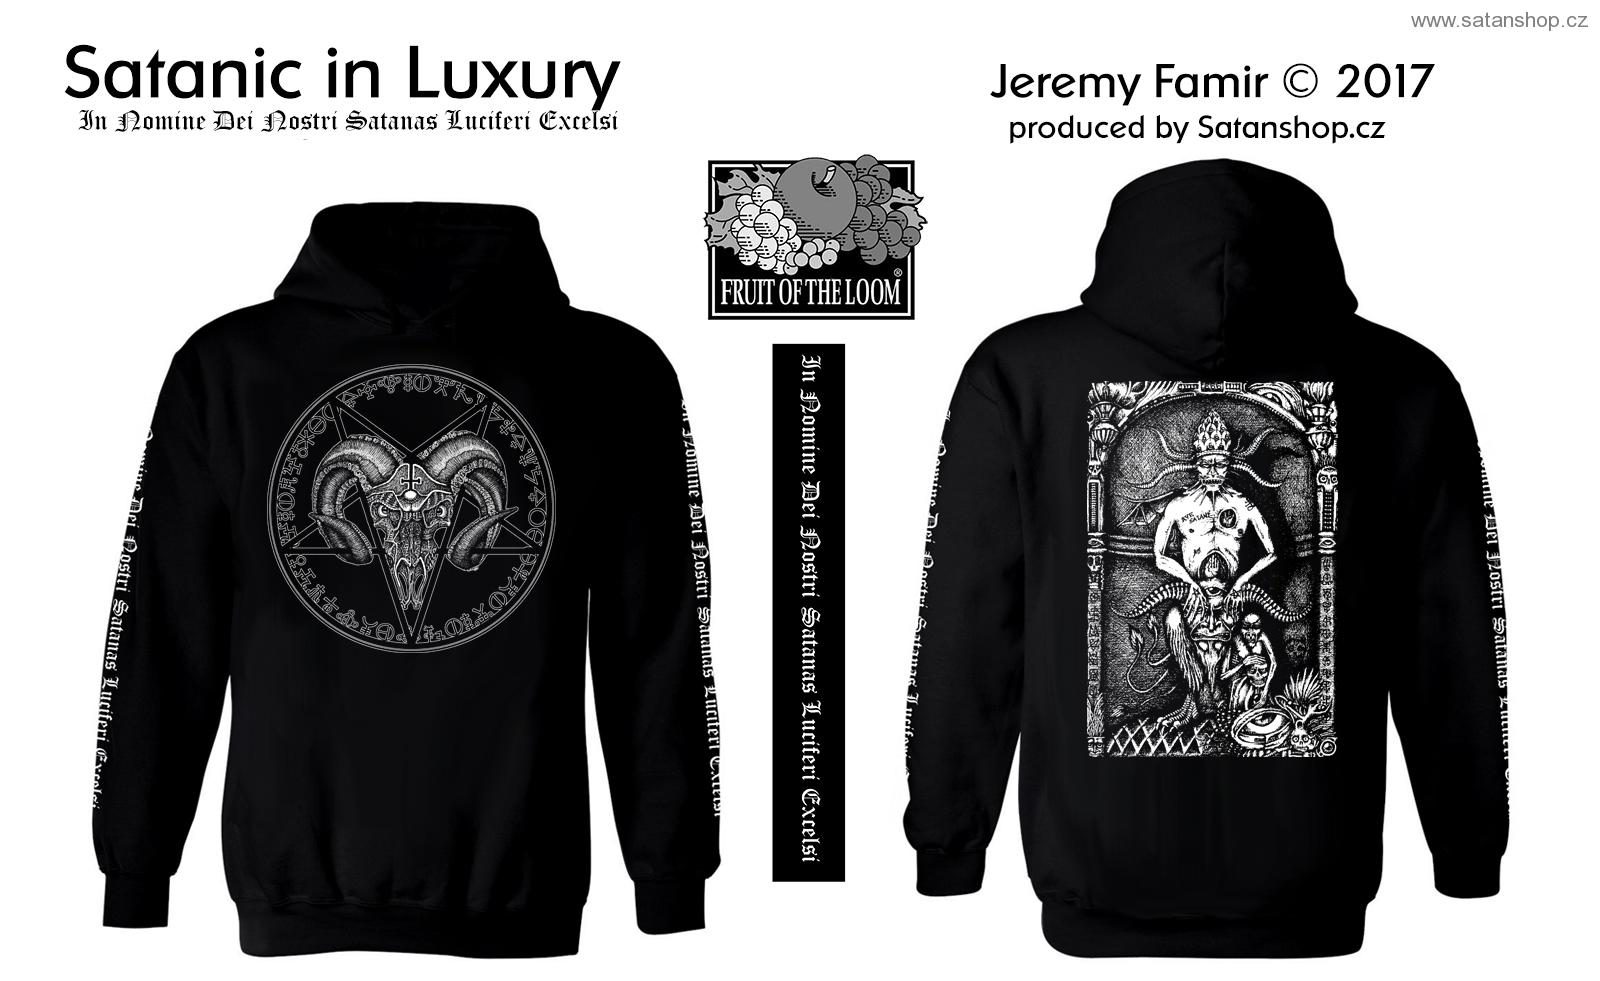 Mikina - Satanic in Luxury - Jeremy Famir